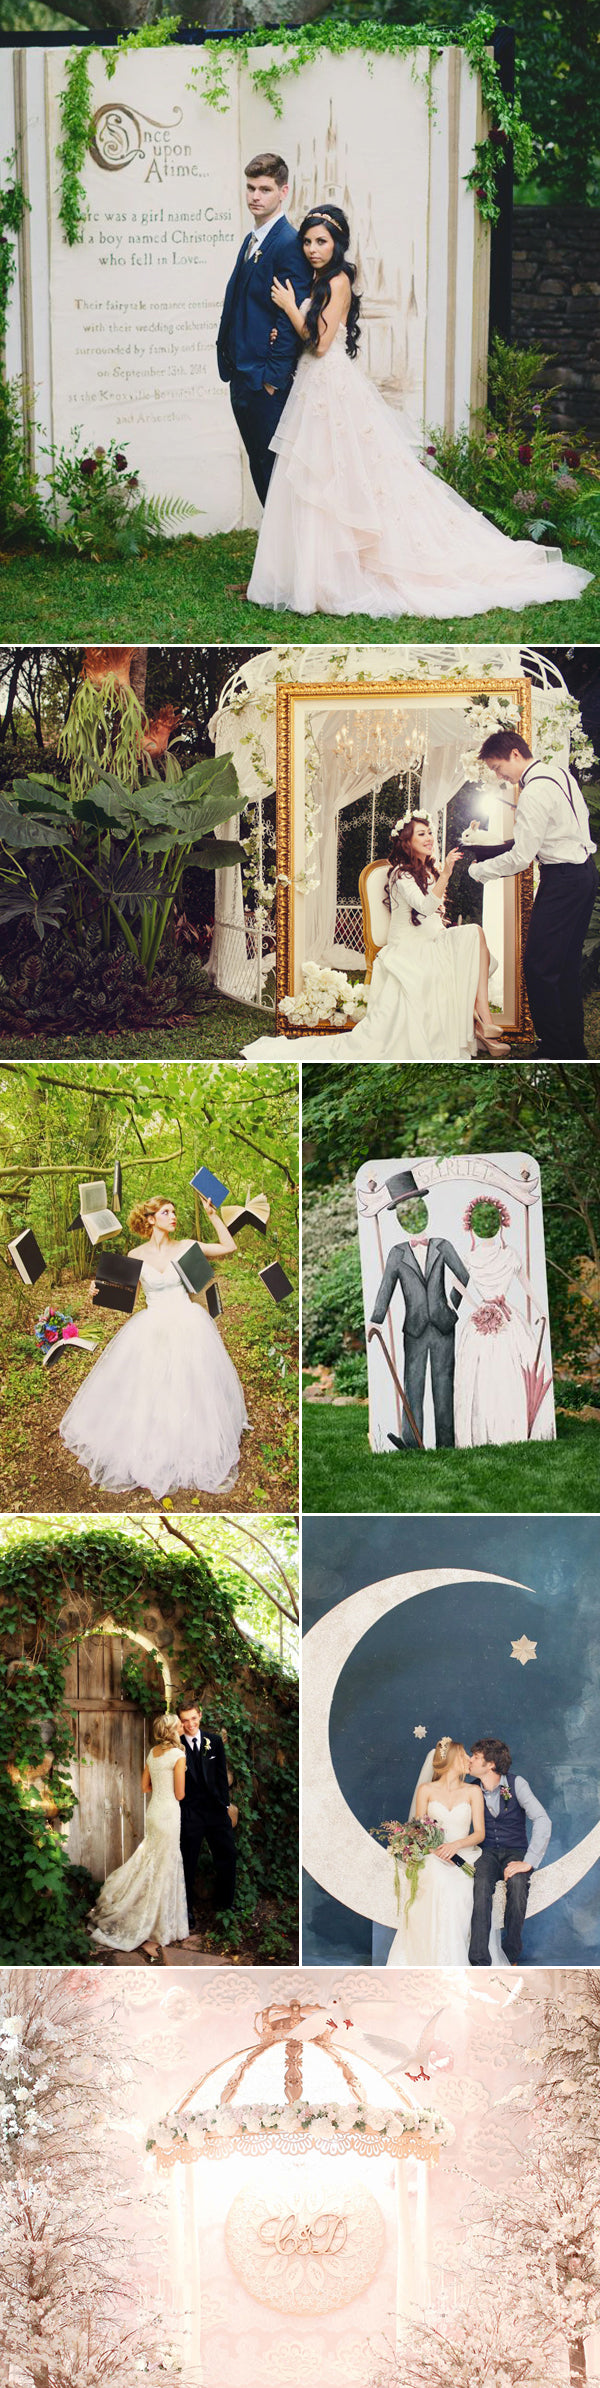 wedding fairytale backdrop idea